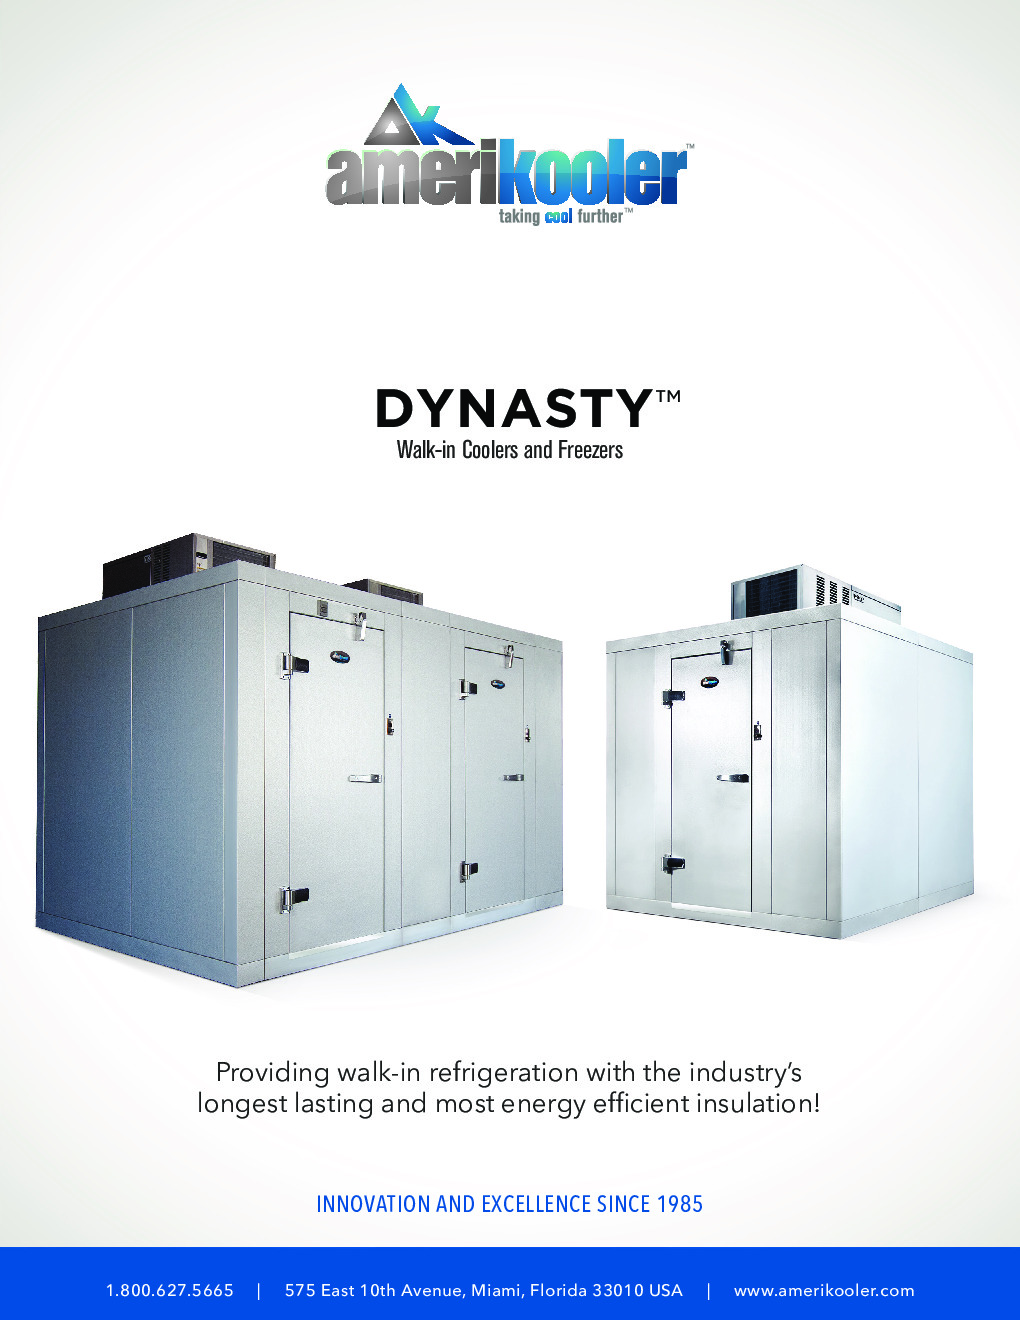 AmeriKooler DW081877F-7/11-SC 8' X 18' Walk-In Cooler, 11' L Cooler with Floor and 7' L Freezer, Self Contained